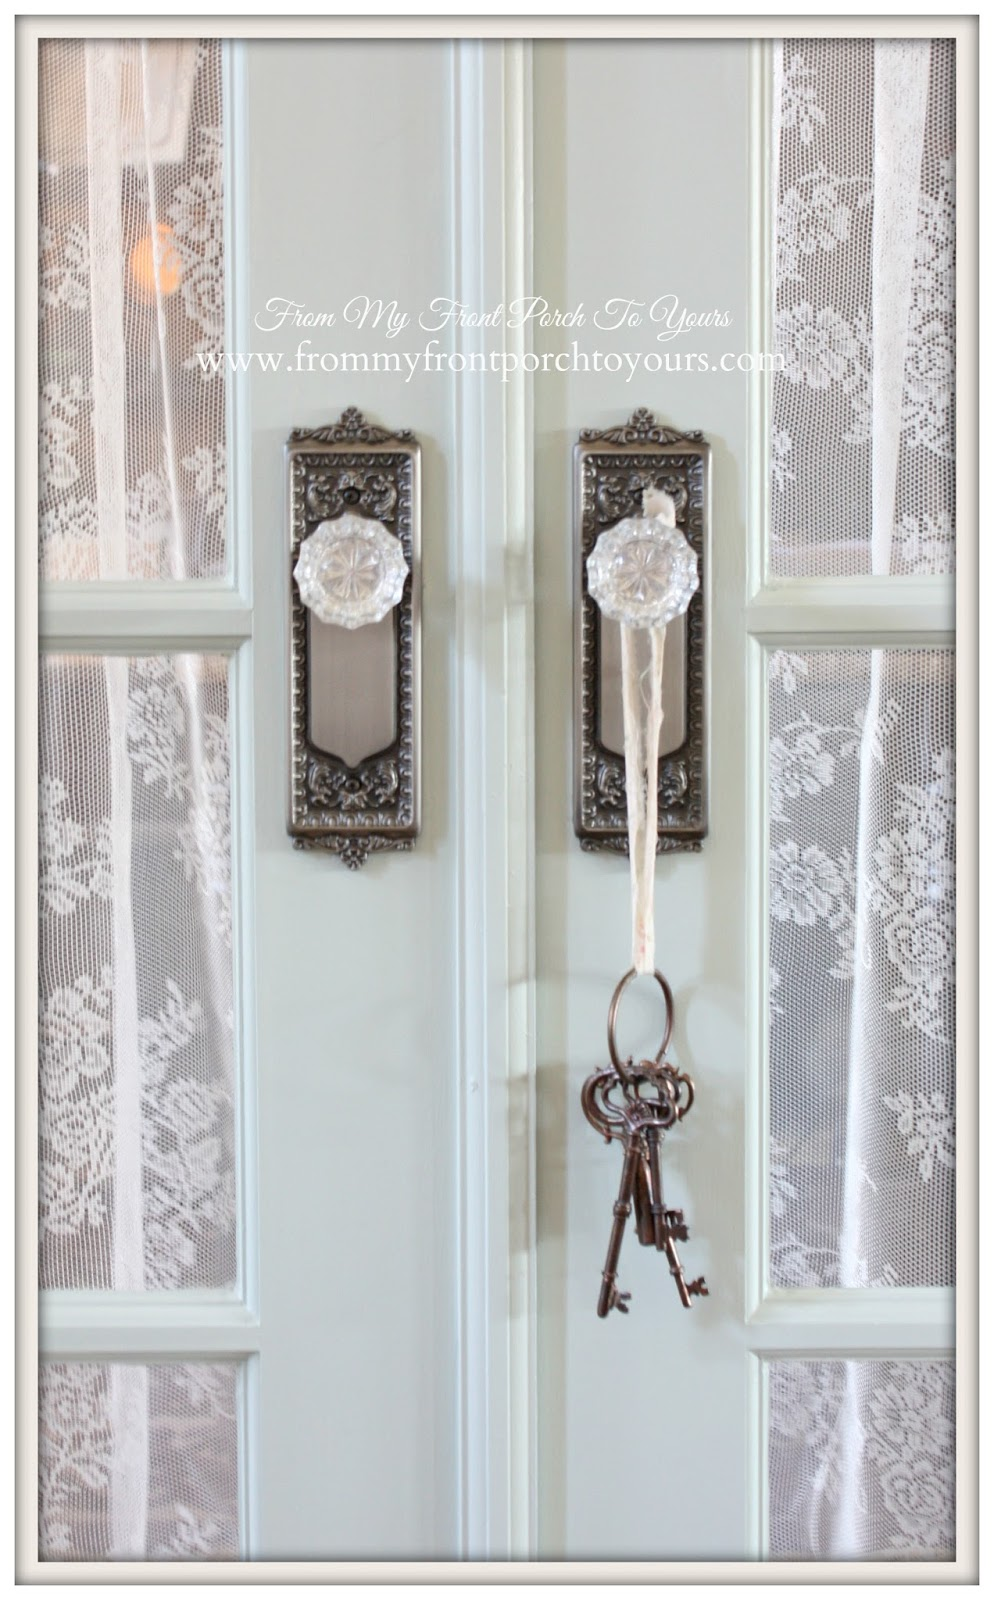 French Farmhouse- SW Rainwashed-House of Antique Hardware Crystal Knobs-DIY Faux Brick Wall- From My Front Porch To Yours